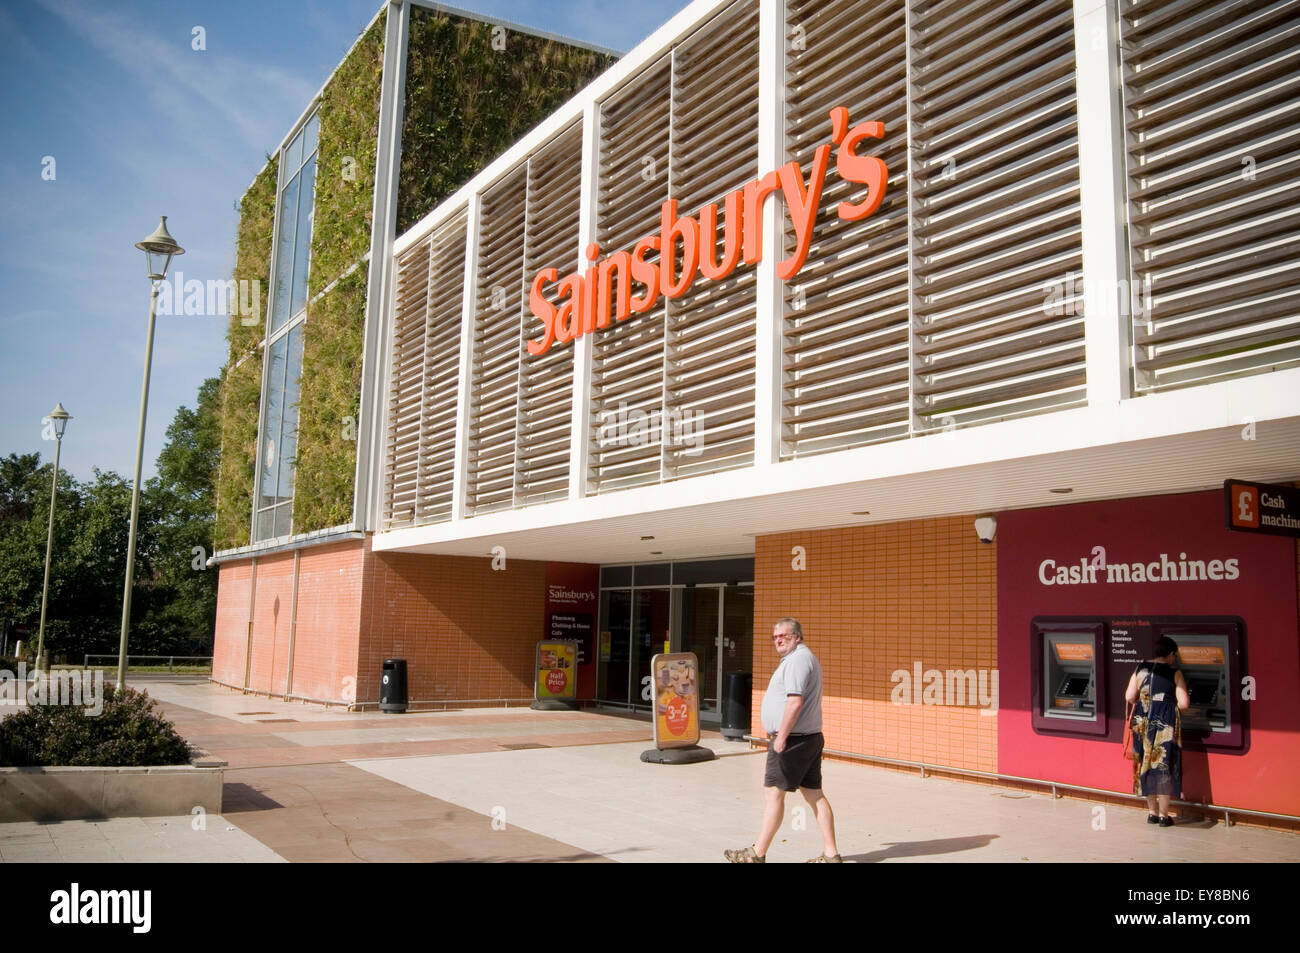 Seductive Sainsburys Sainsburys Town Center Centre Supermarket Supermarkets  With Handsome Sainsburys Sainsburys Town Center Centre Supermarket Supermarkets Uk Brand  Branding Logo Welwyn Garden City With Attractive Cote London Covent Garden Also Planning Permission For Garden Sheds In Addition Bristol Gardens Spa And Bmi Garden Hospital As Well As Riverhill Himalayan Gardens Additionally How To Terrace A Sloping Garden From Alamycom With   Attractive Sainsburys Sainsburys Town Center Centre Supermarket Supermarkets  With Seductive Bmi Garden Hospital As Well As Riverhill Himalayan Gardens Additionally How To Terrace A Sloping Garden And Handsome Sainsburys Sainsburys Town Center Centre Supermarket Supermarkets Uk Brand  Branding Logo Welwyn Garden City Via Alamycom